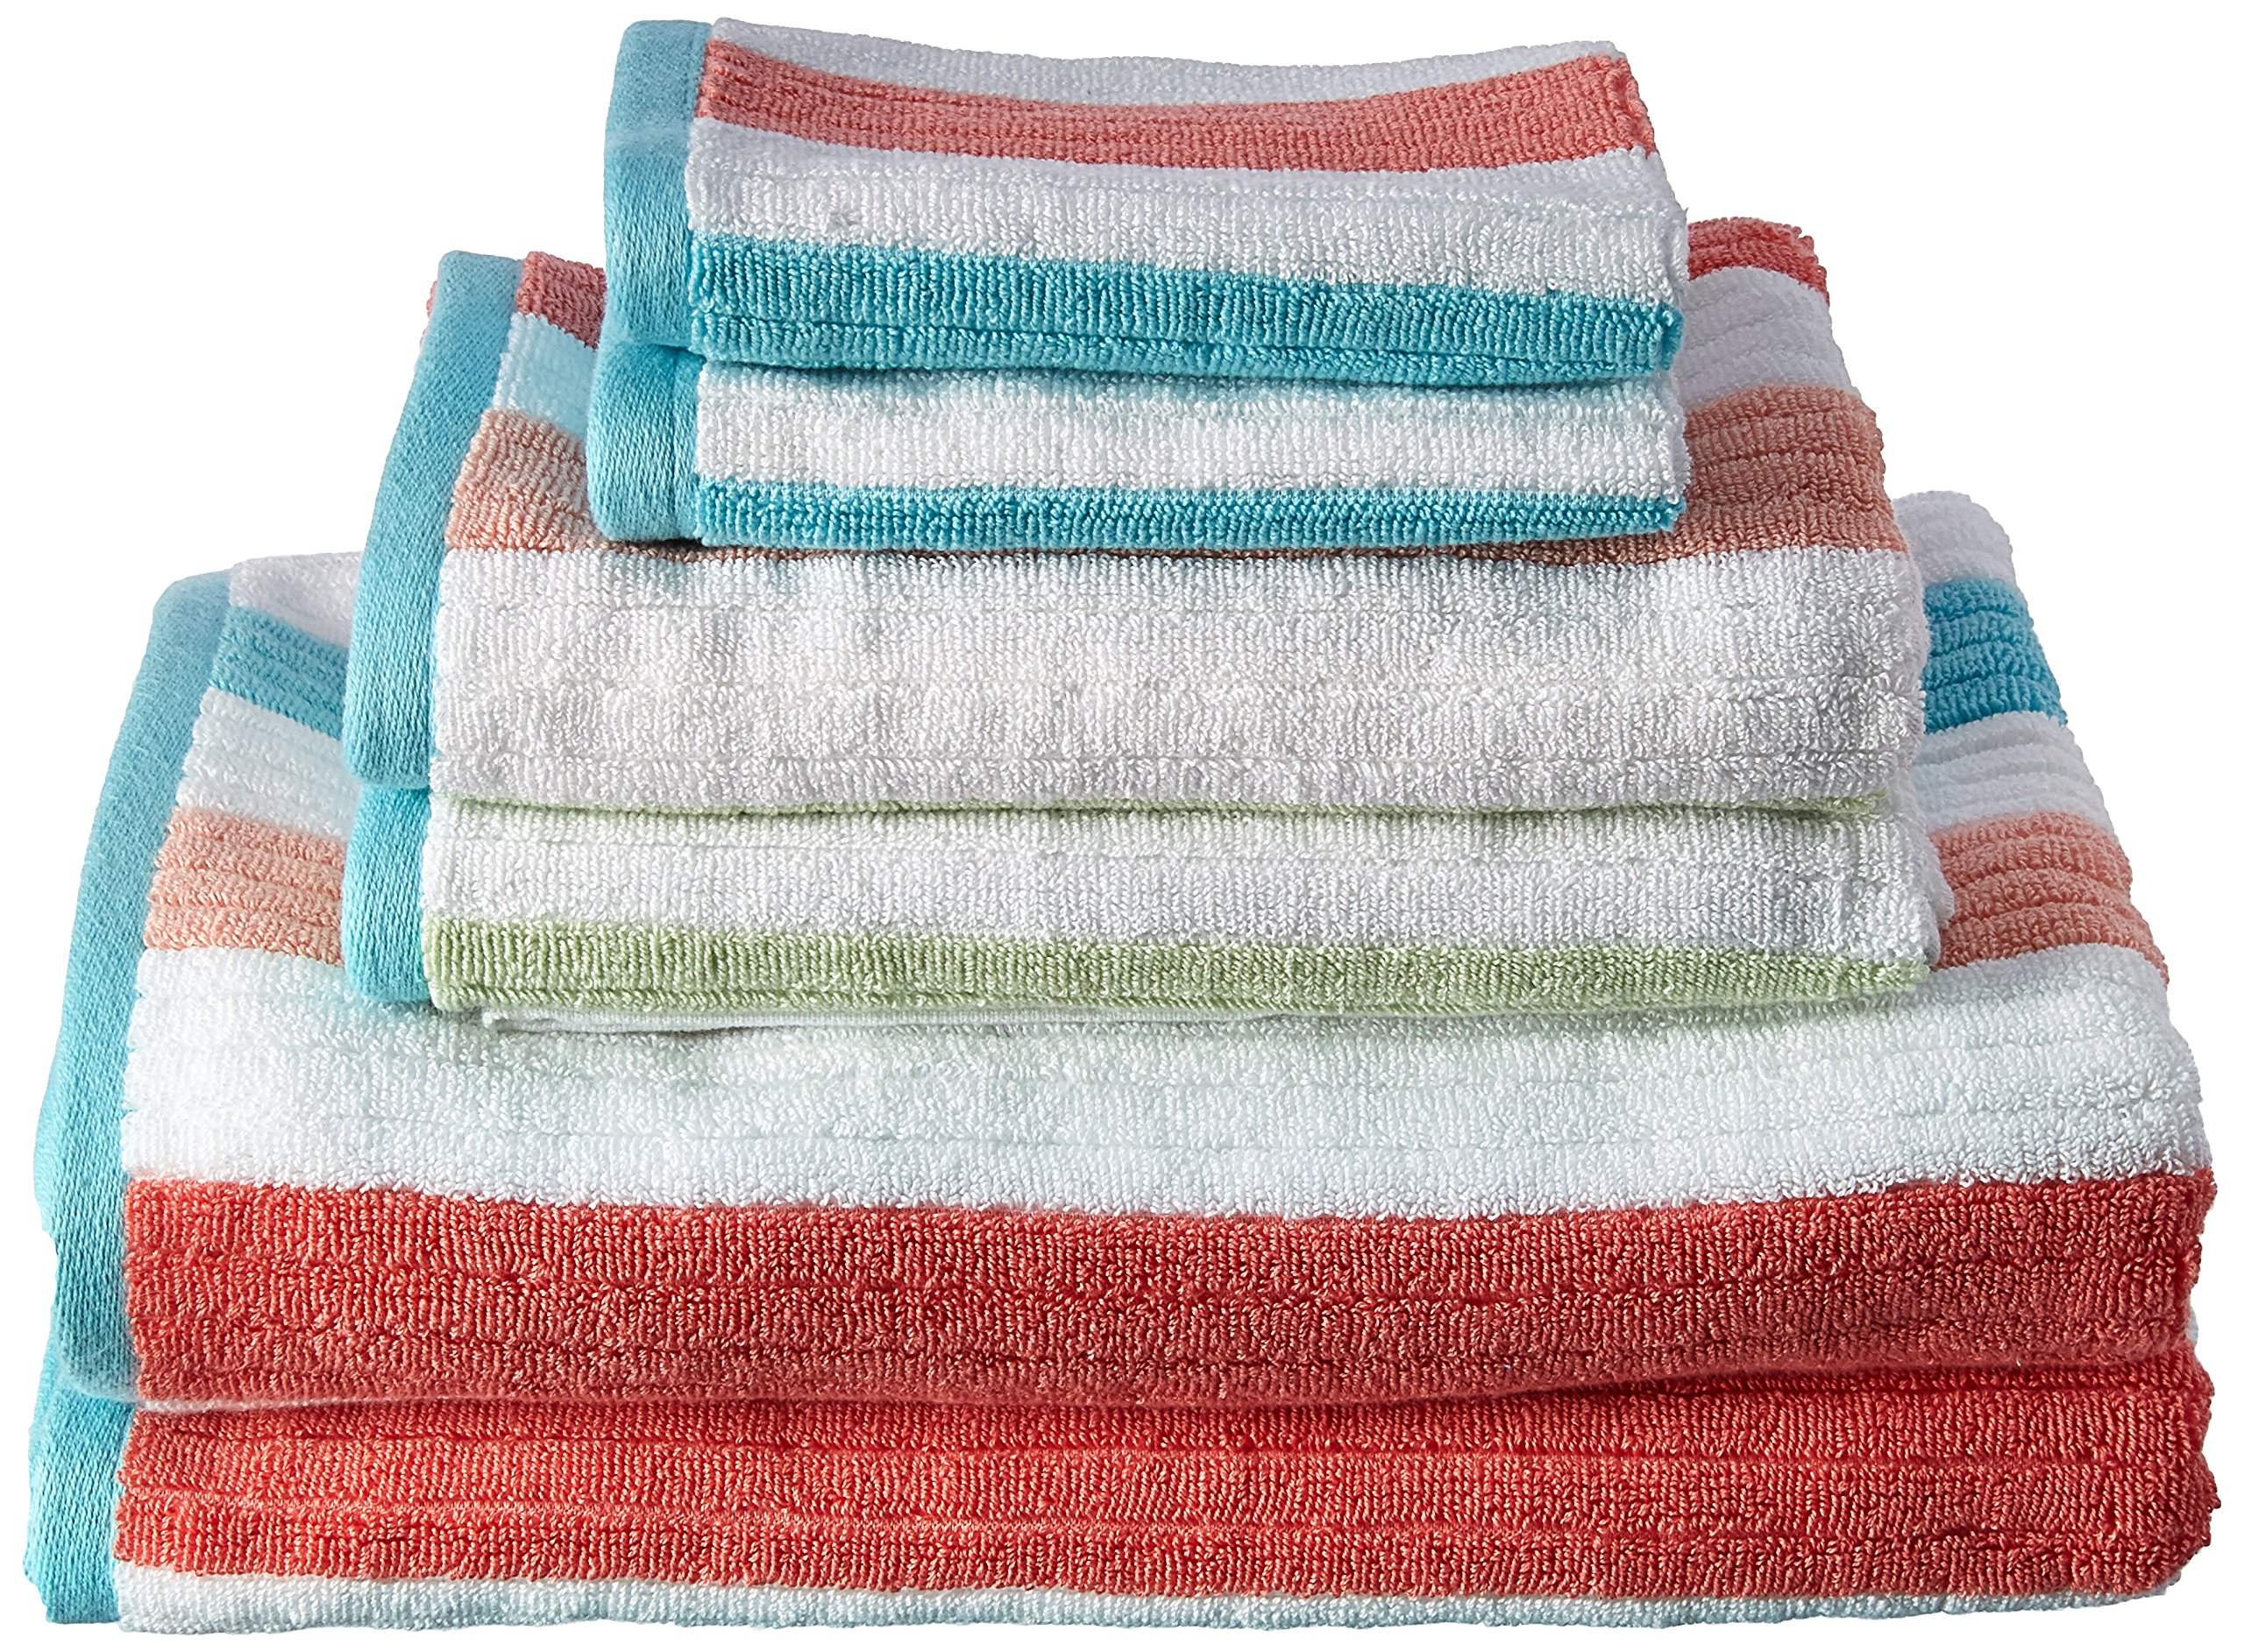 Caro Home 6PC-1128-T1-1007 Stripes Karissa 6-Piece Cotton Bath Towel Set